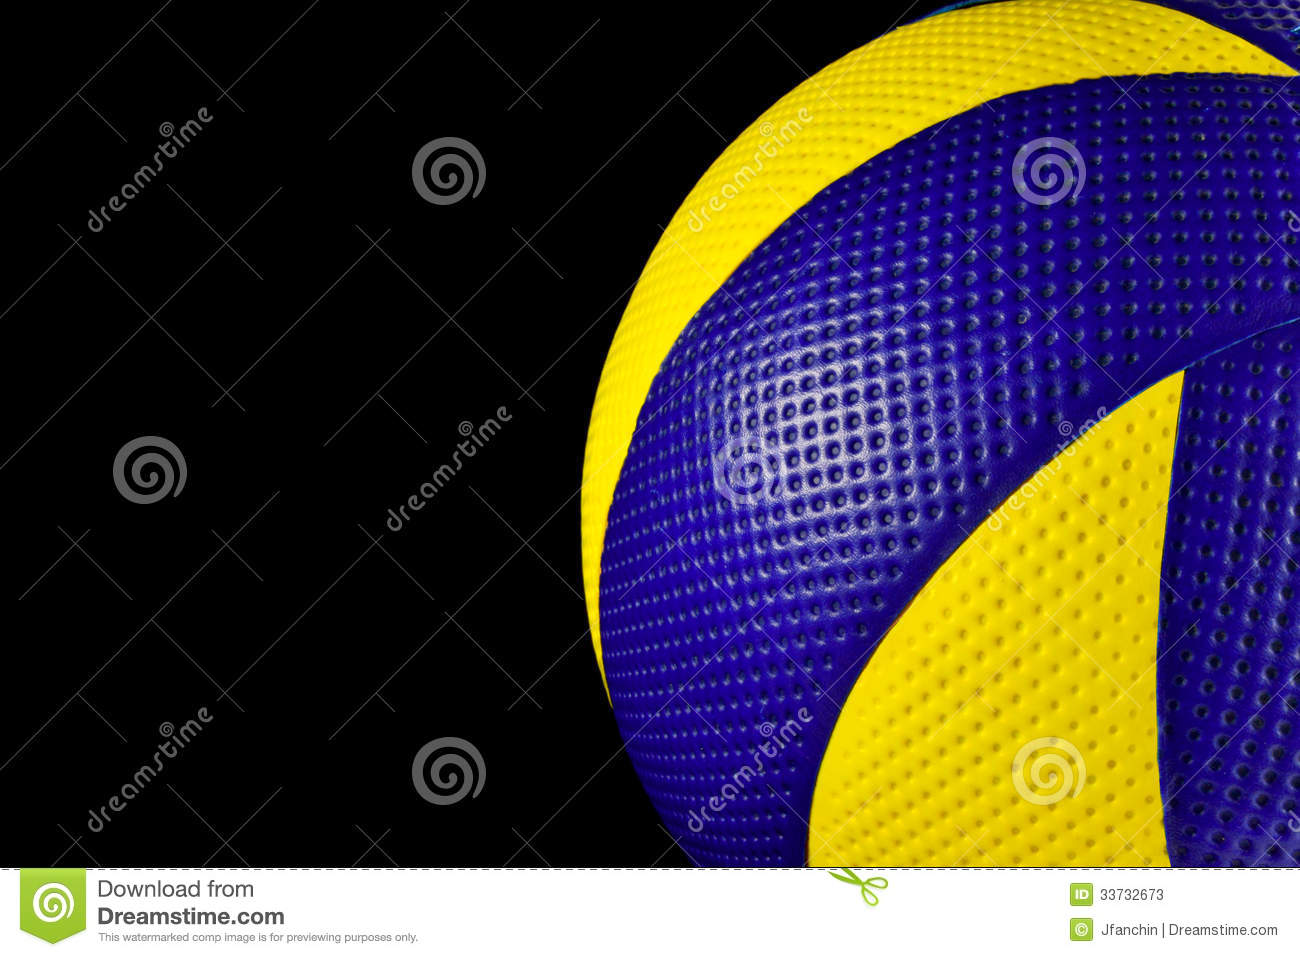 Background Abstract Sport Volleyball Blue Yellow Ball: Volleyball Stock Photos